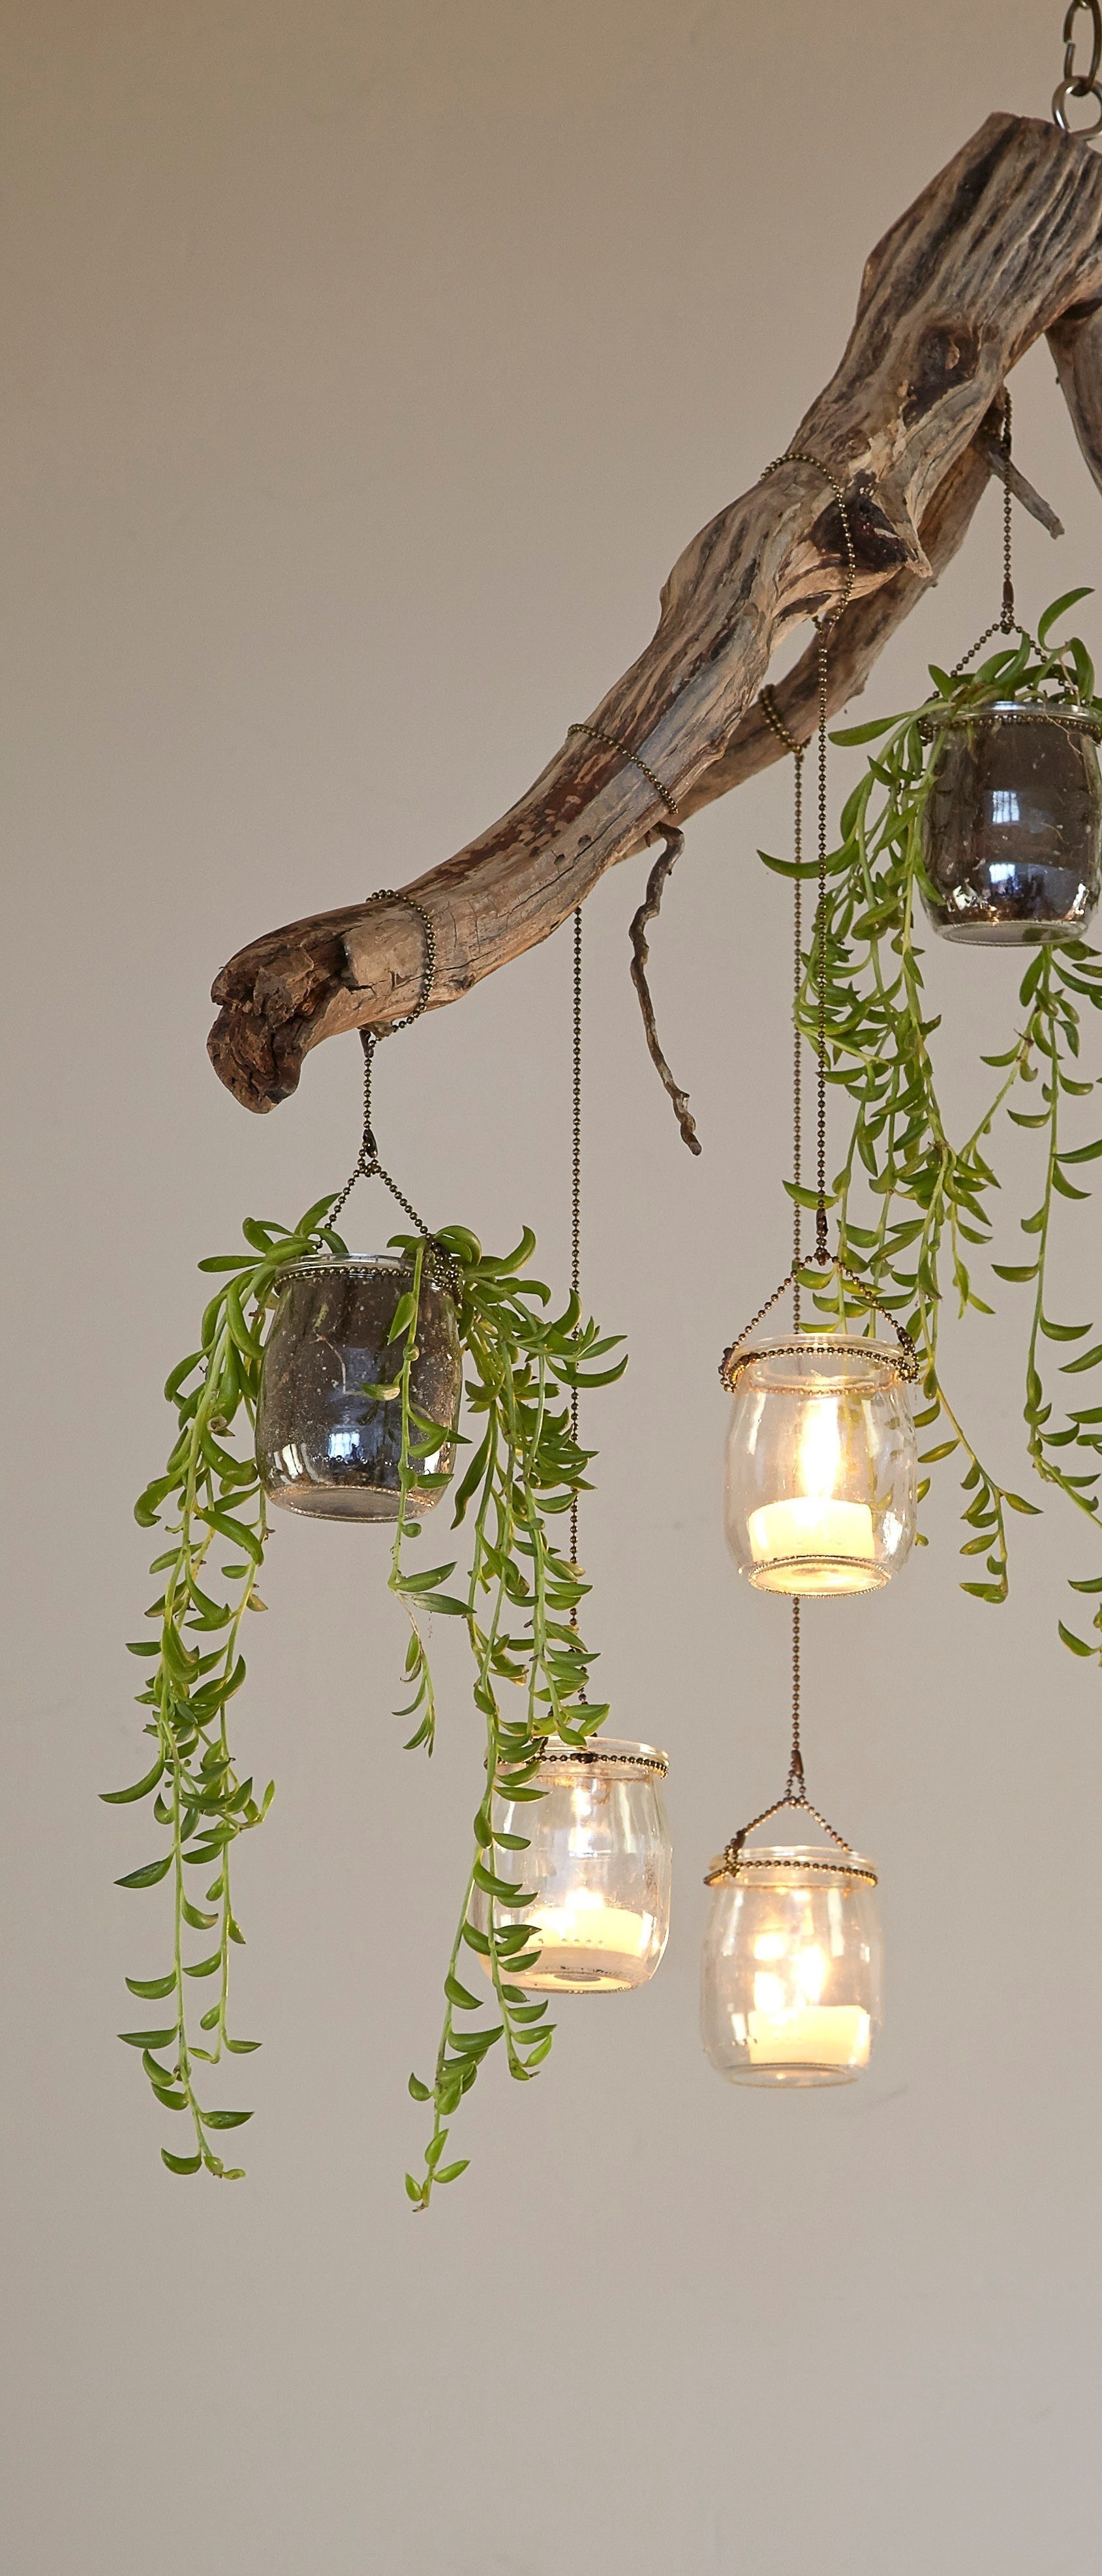 Planted Chandelier 183 Extract From Plant Craft By Caitlin